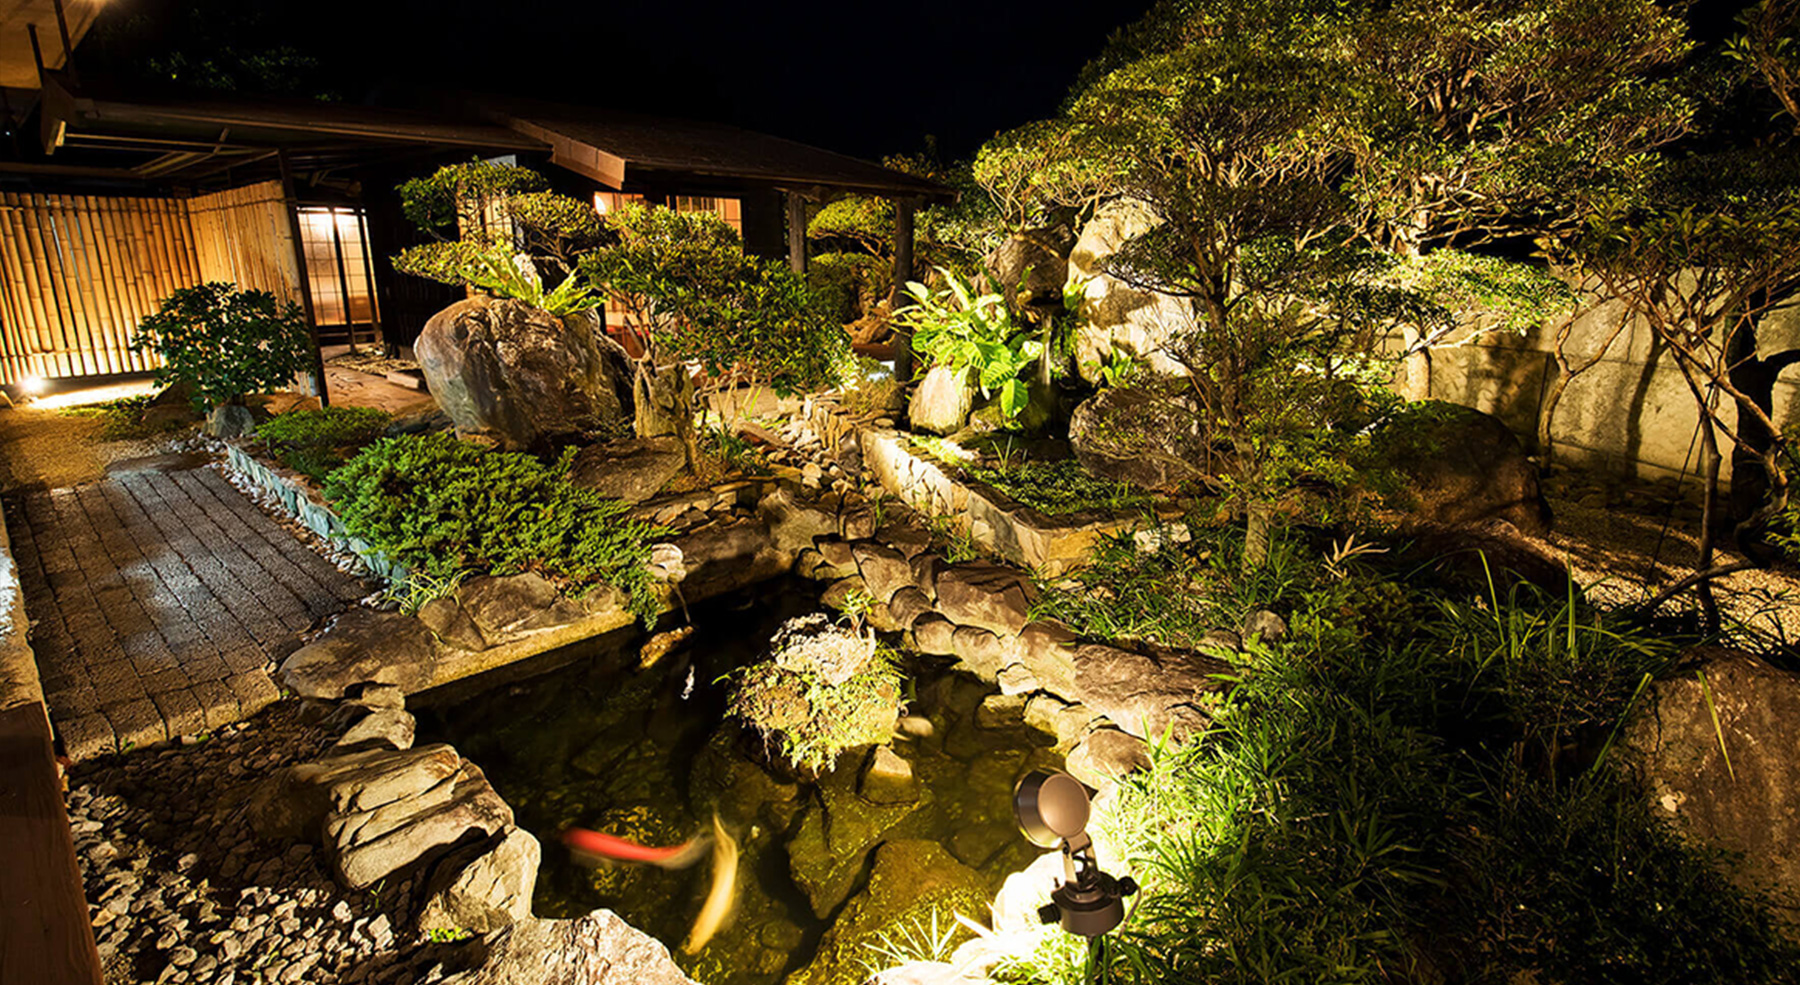 The grandiose Japanese-styled garden with tropical plants